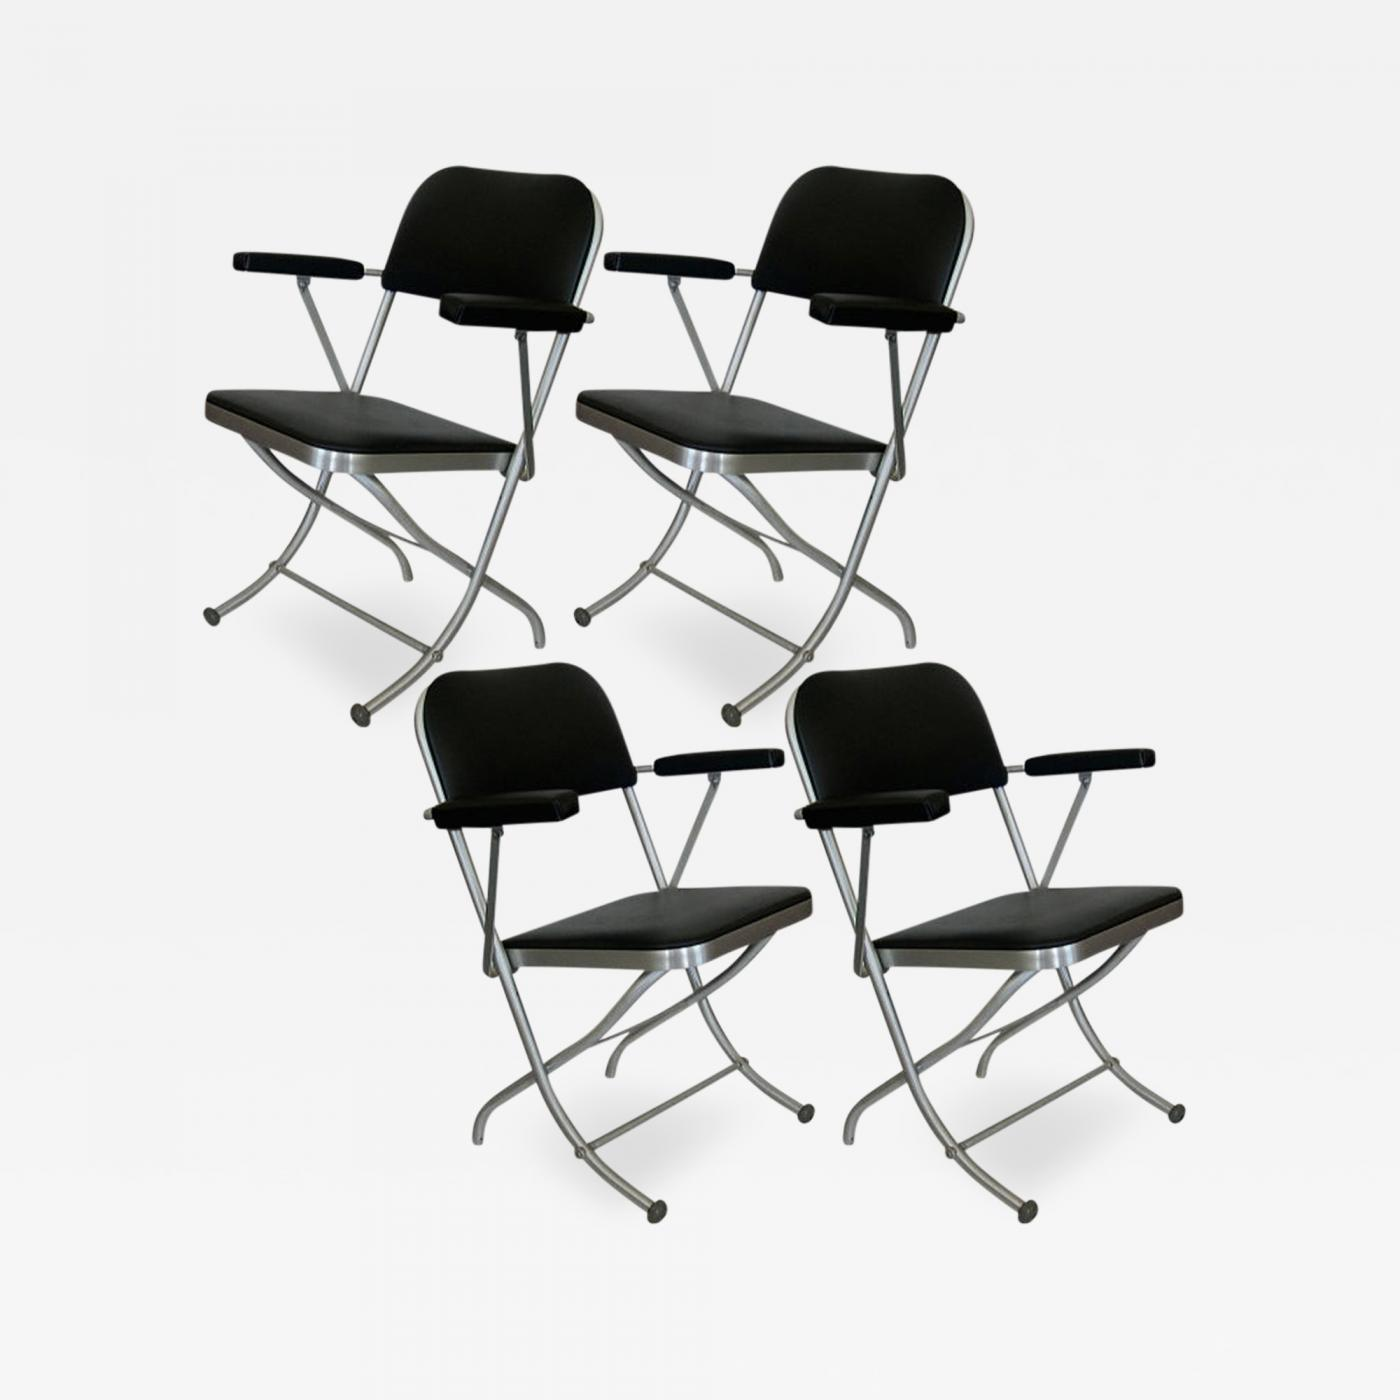 warren mcarthur set of ten warren mcarthur folding chairs 1930s Furniture Trends for Living Rooms set of ten warren mcarthur folding chairs